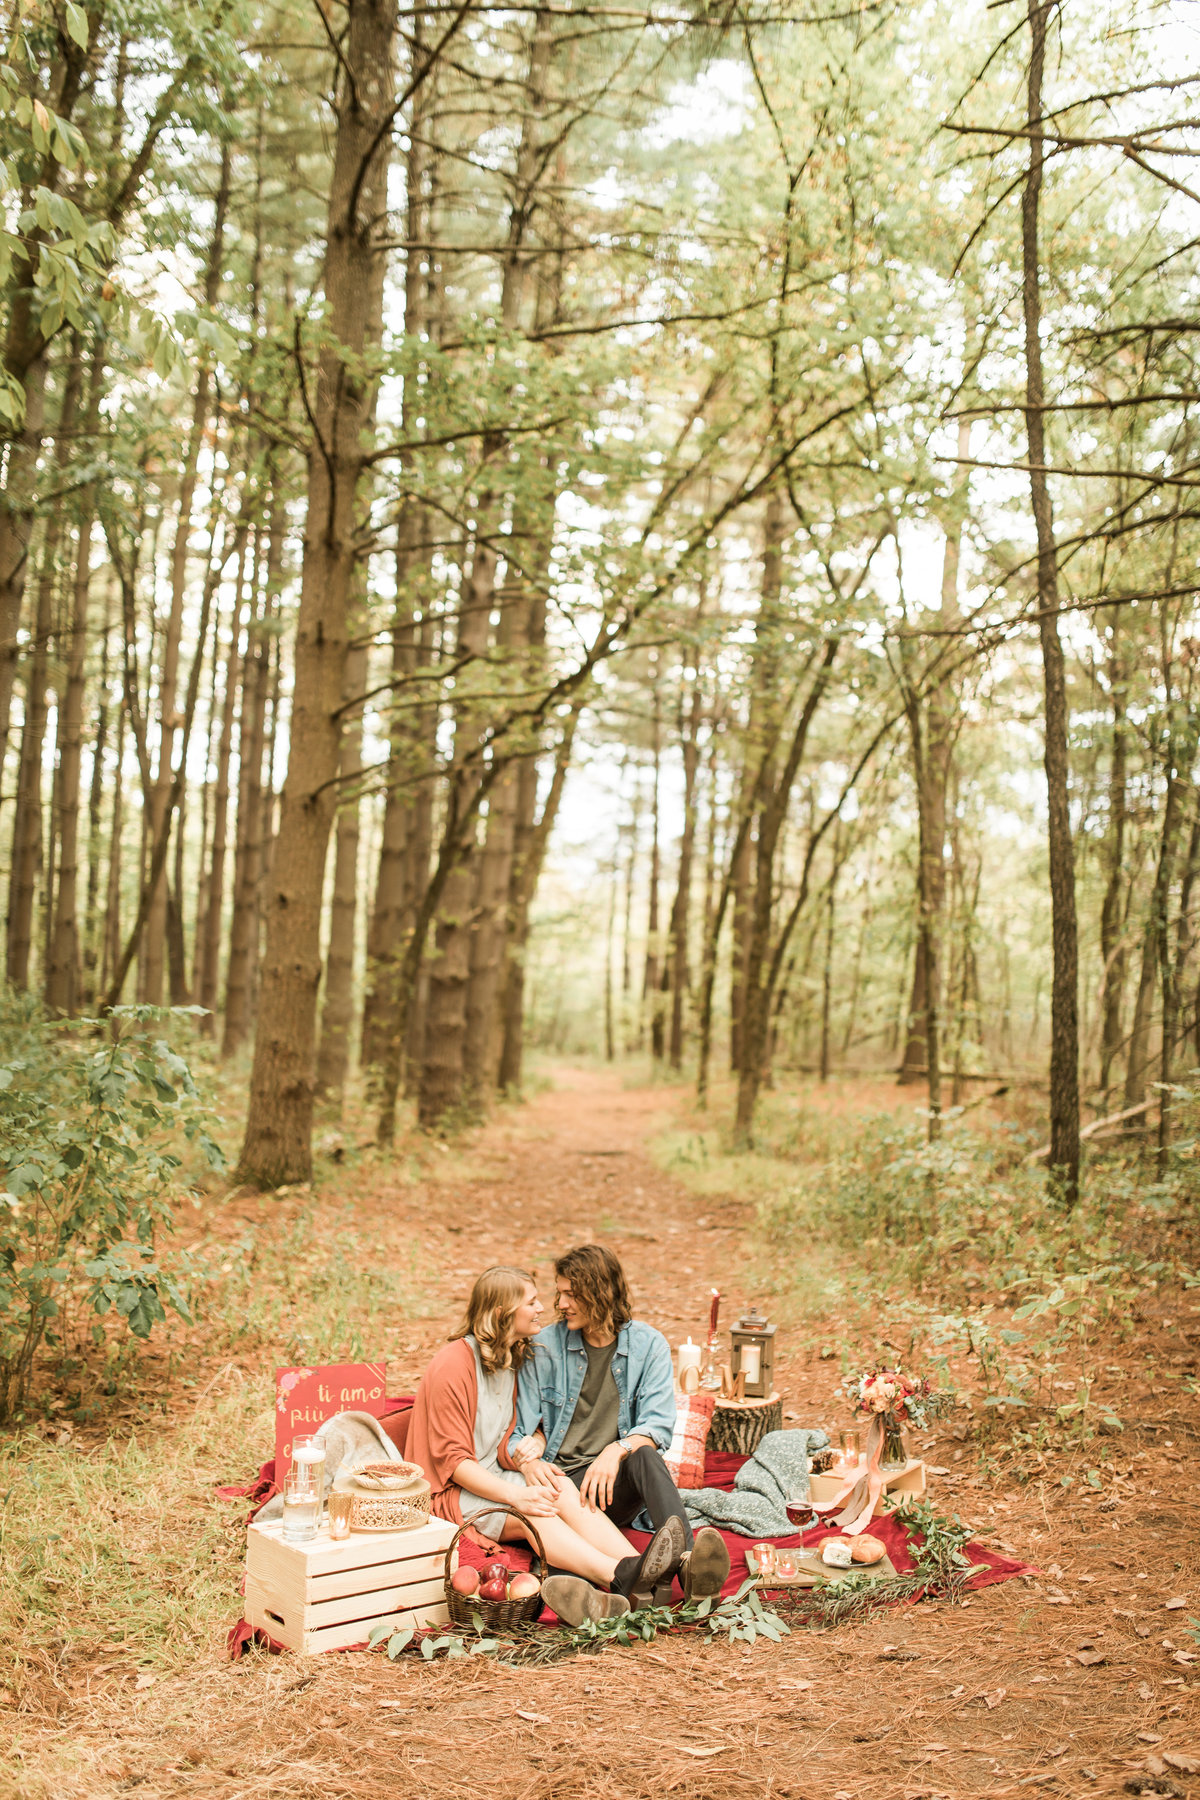 Busch Wildlife  Defiance, MO  Fall Picnic Colorado Themed Surpise Proposal  Cameron + Mikayla  Allison Slater Photography283